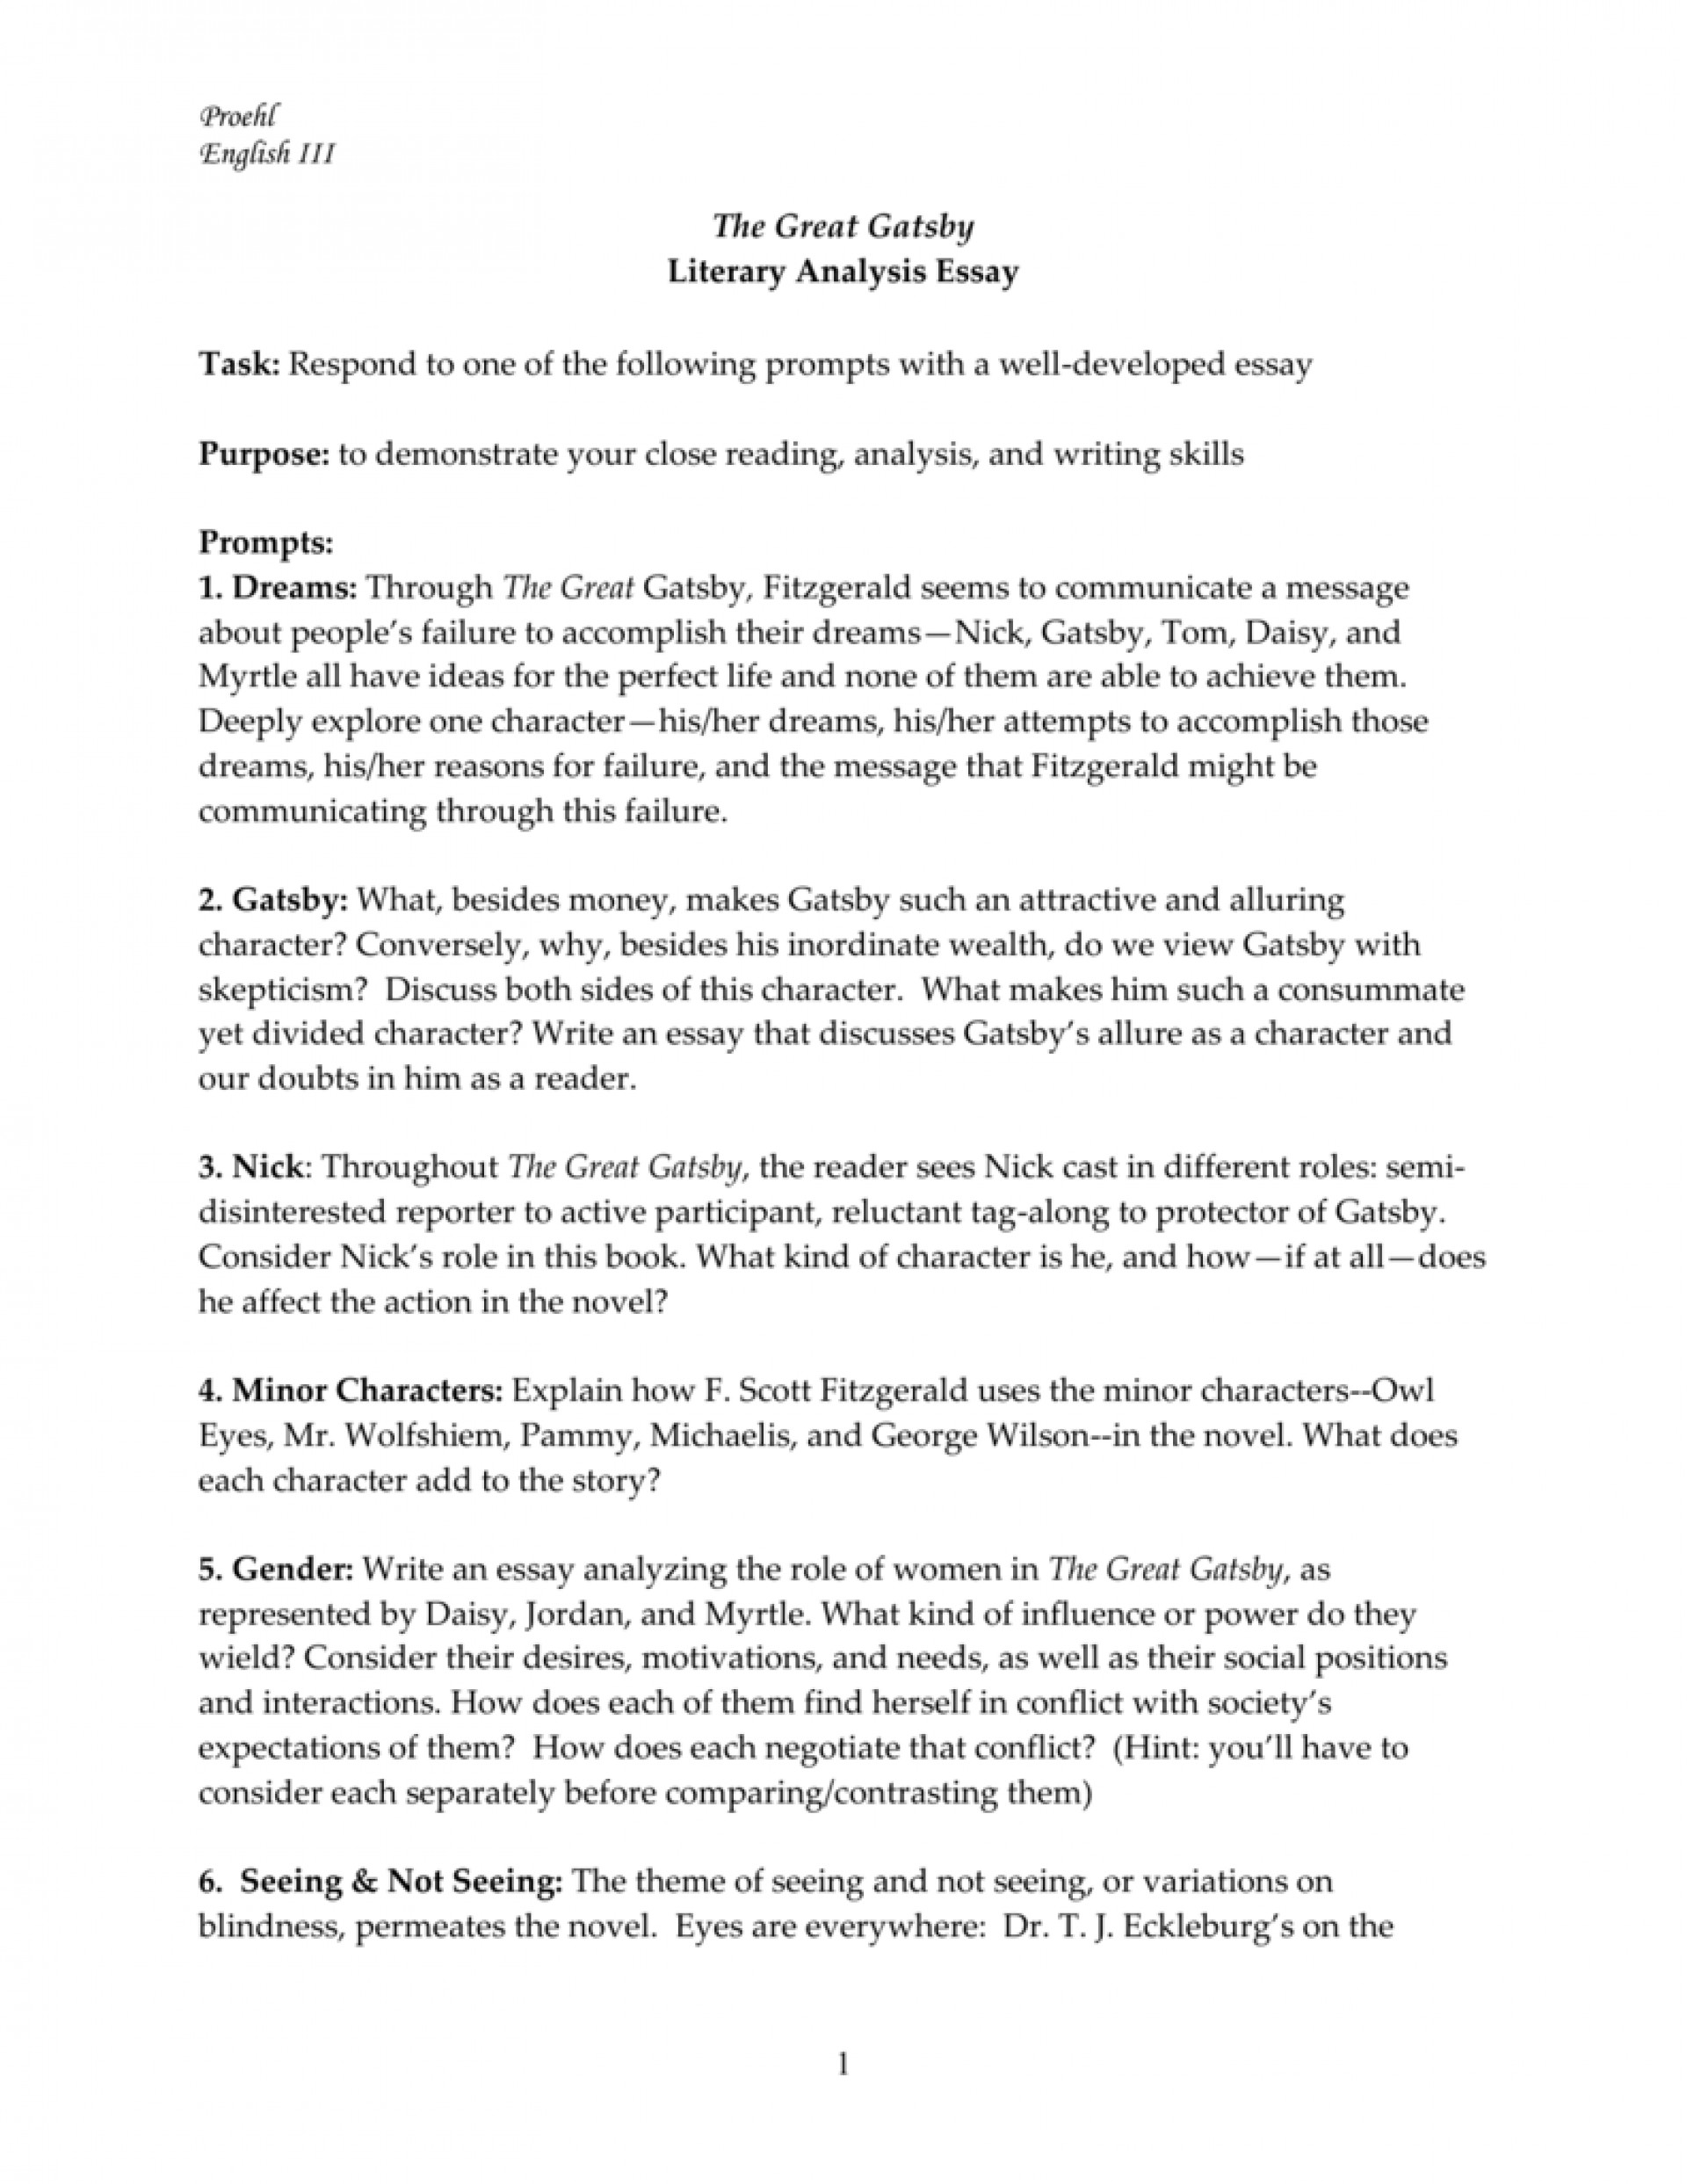 006 Essay Example The Great Gatsby Topics 008001974 1 Exceptional Prompts American Dream Questions And Answers Research 1920